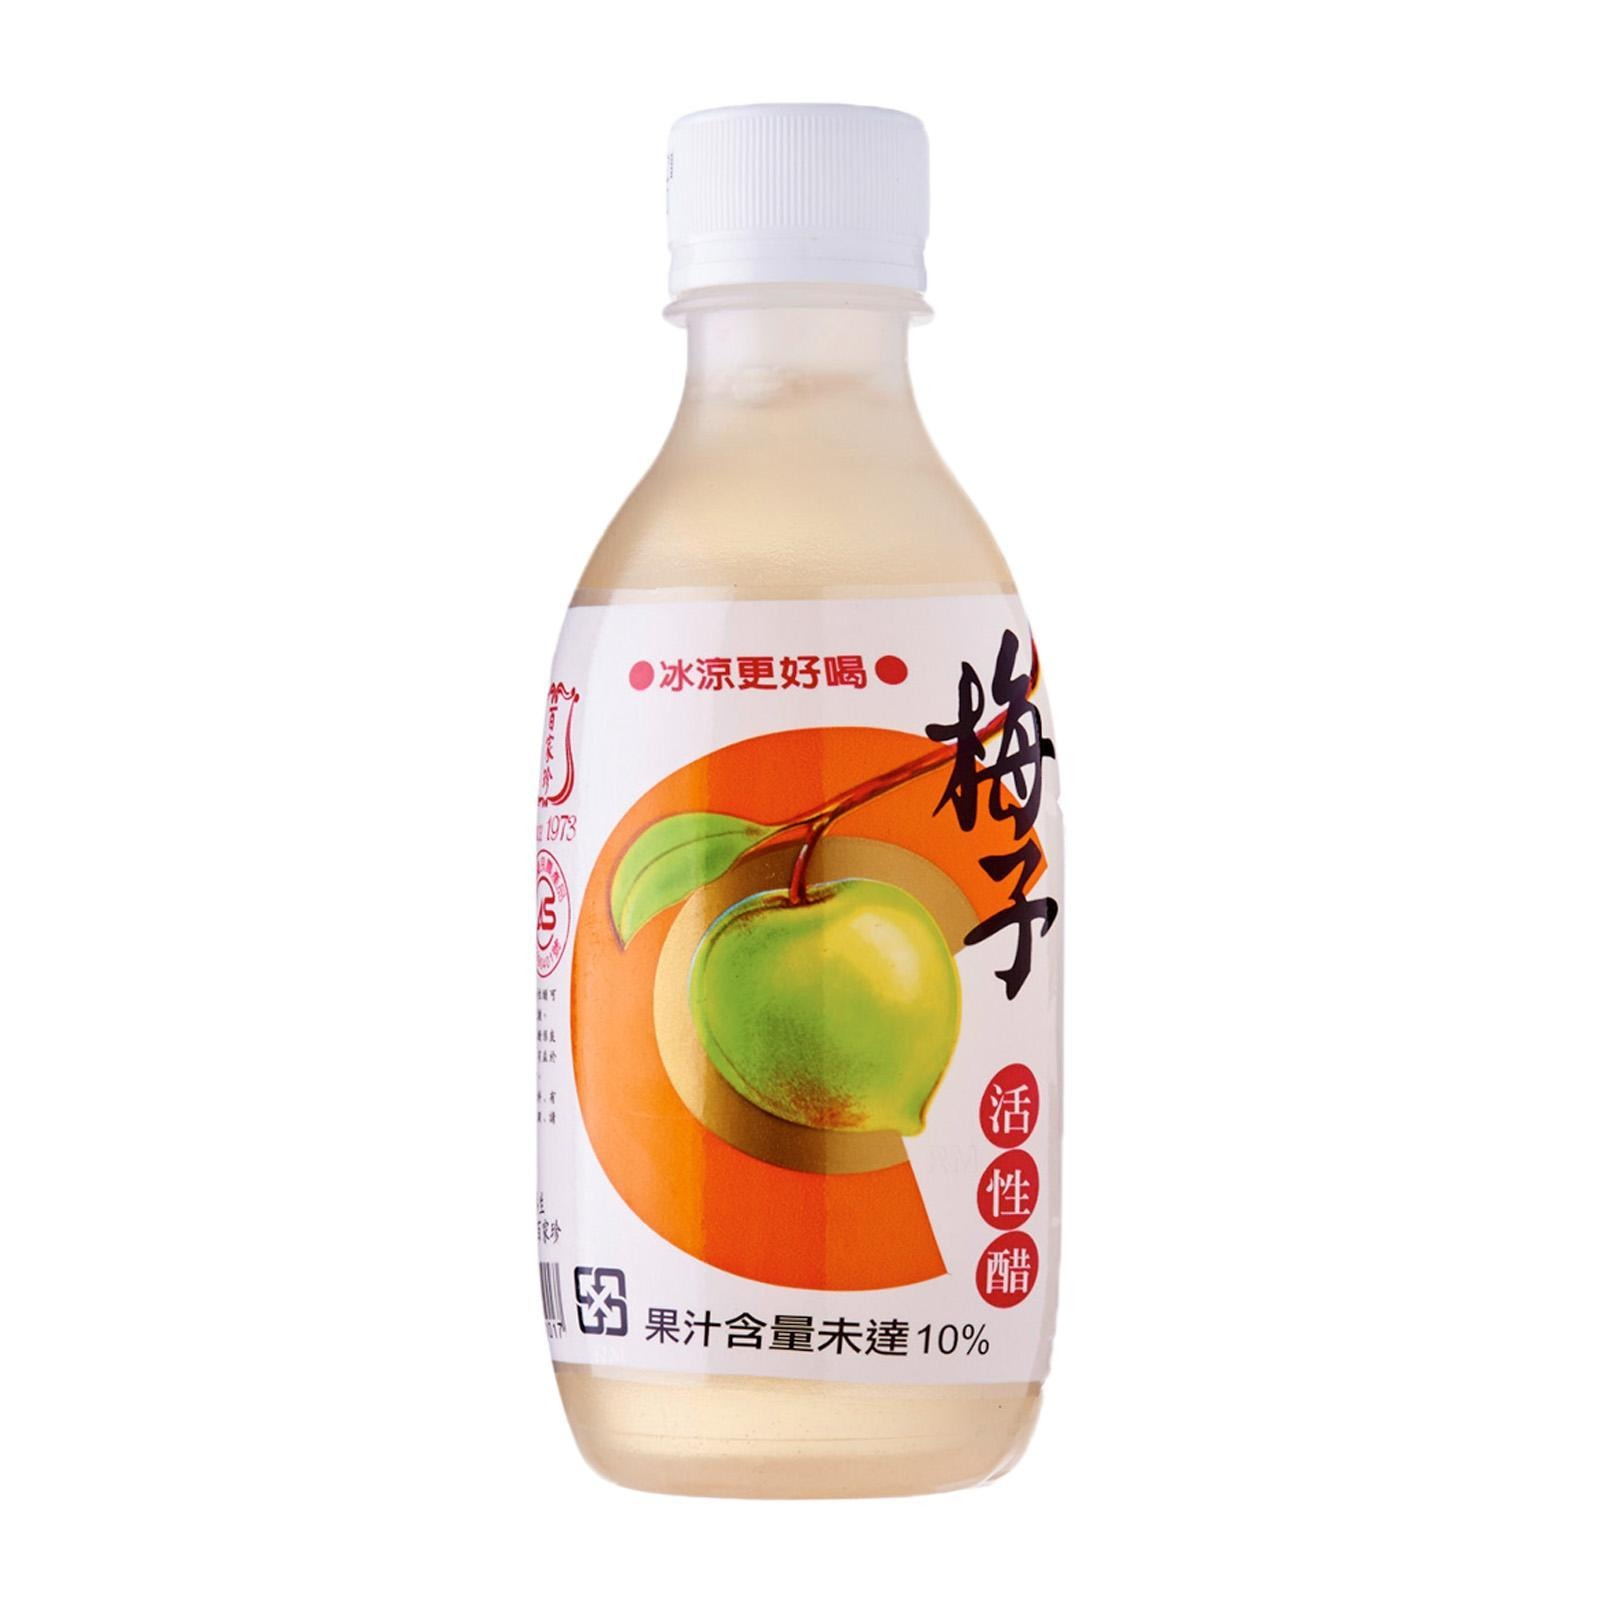 Pai Chia Chen Fruit Vinegar Ready to Drink - Plum